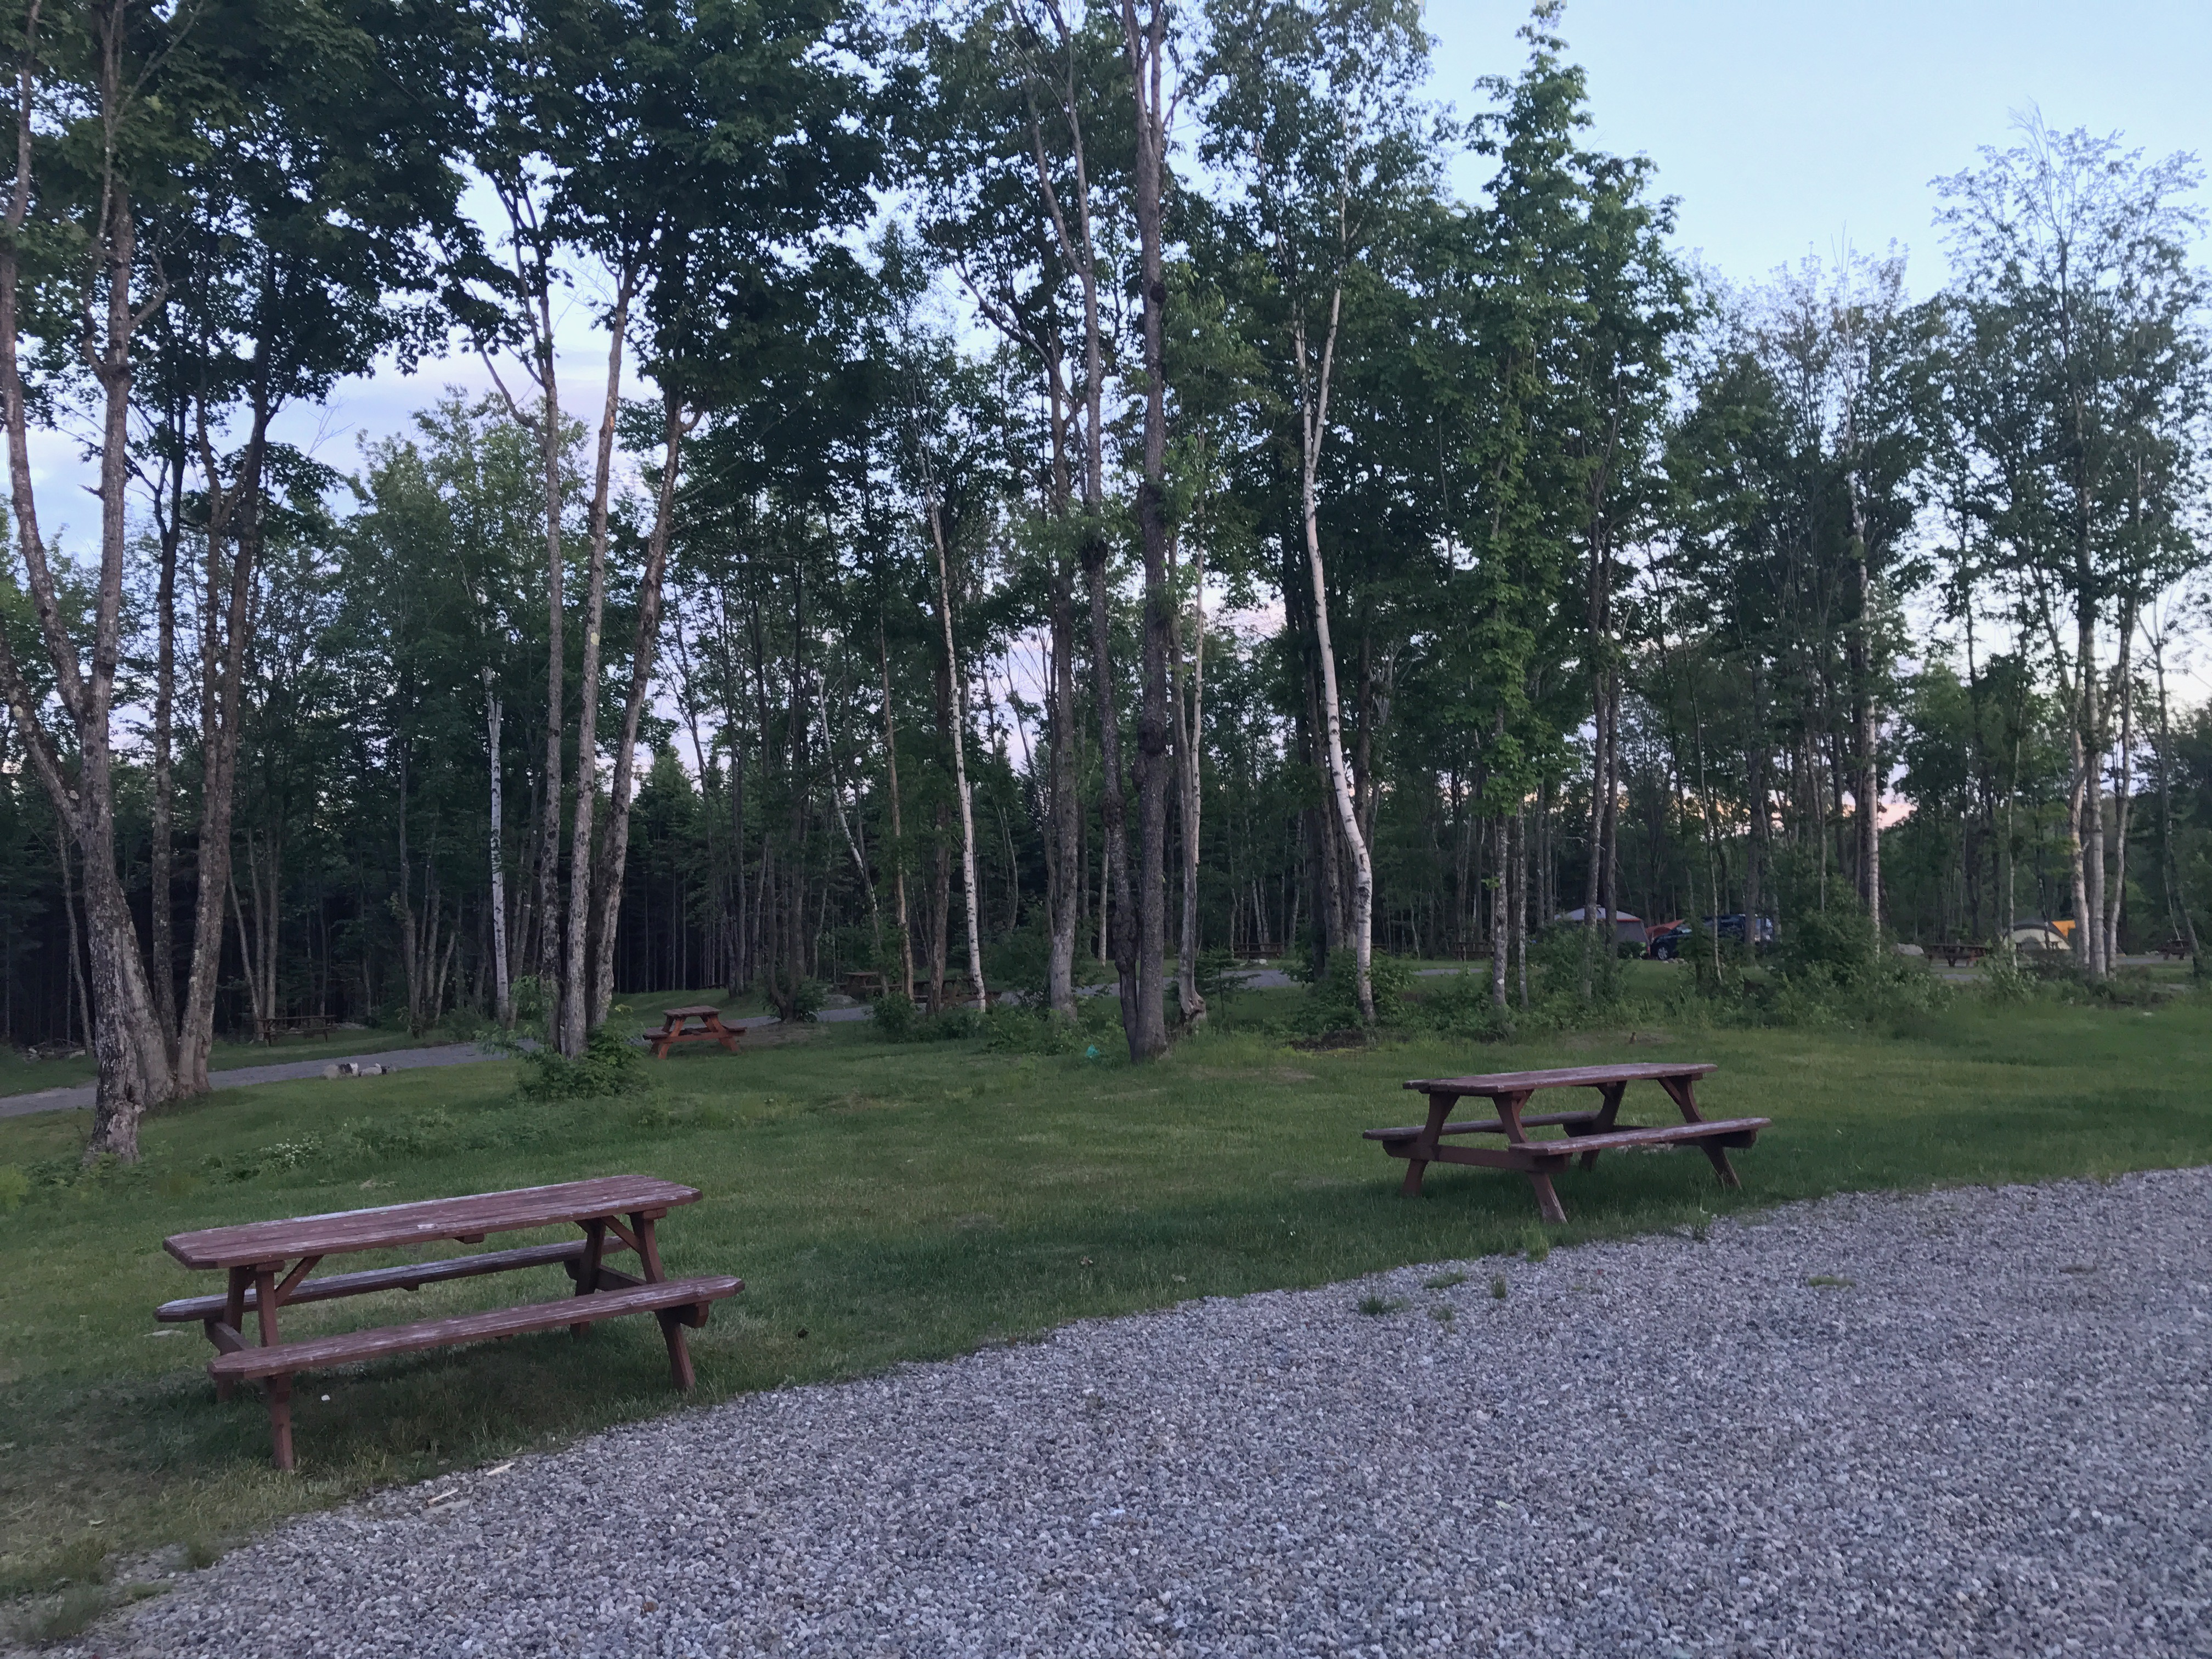 http://www.familycampgrounds.ca/wp-content/uploads/2018/01/camping-familial-complexe-atlantide-infra-4.jpg